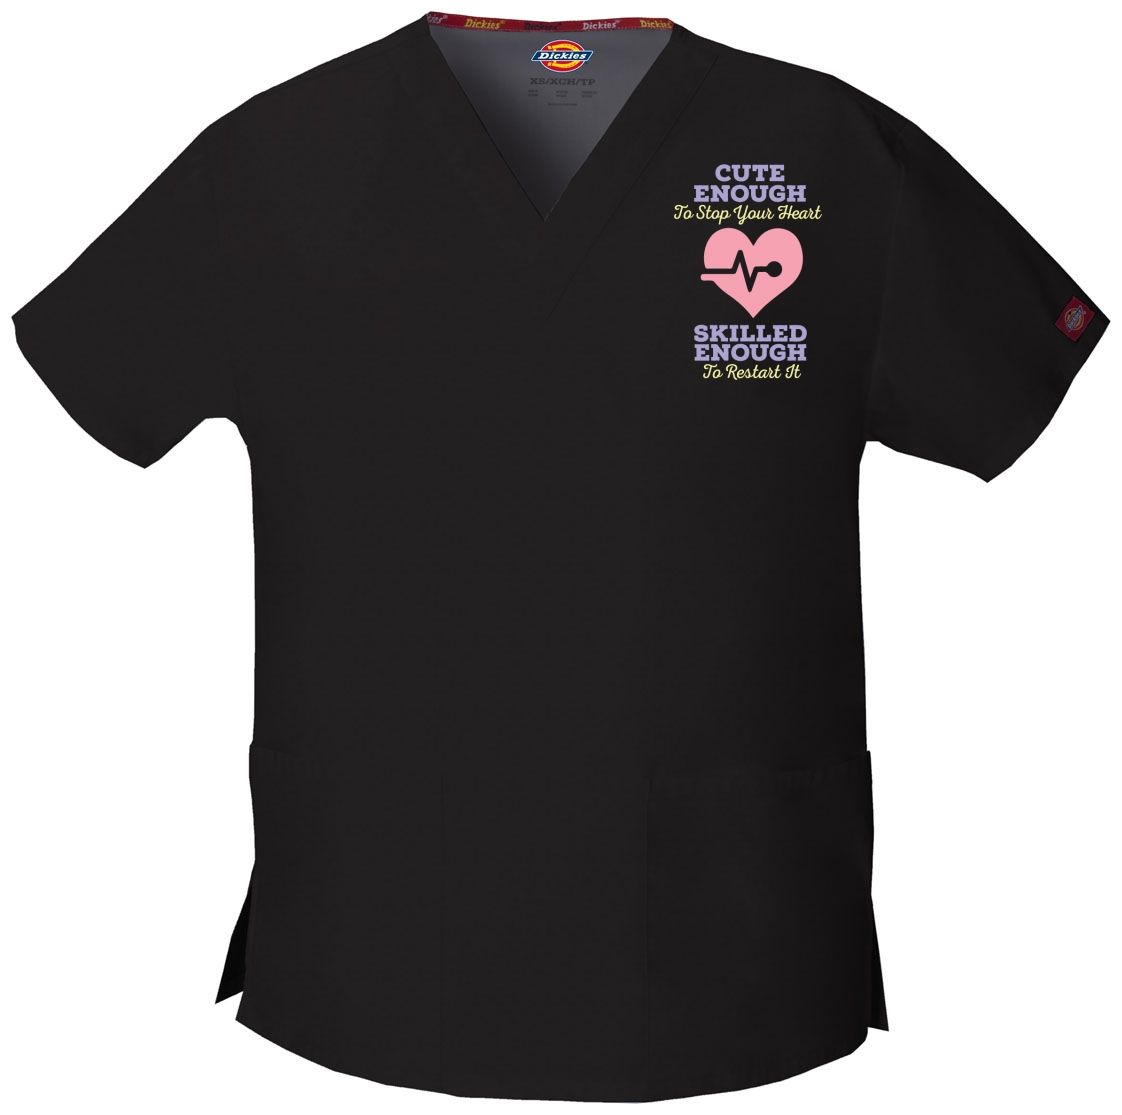 Cute Enough To Stop Your Heart - Nurse - Embroidered Scrub / Embroidered  Medical Srcubs Tops